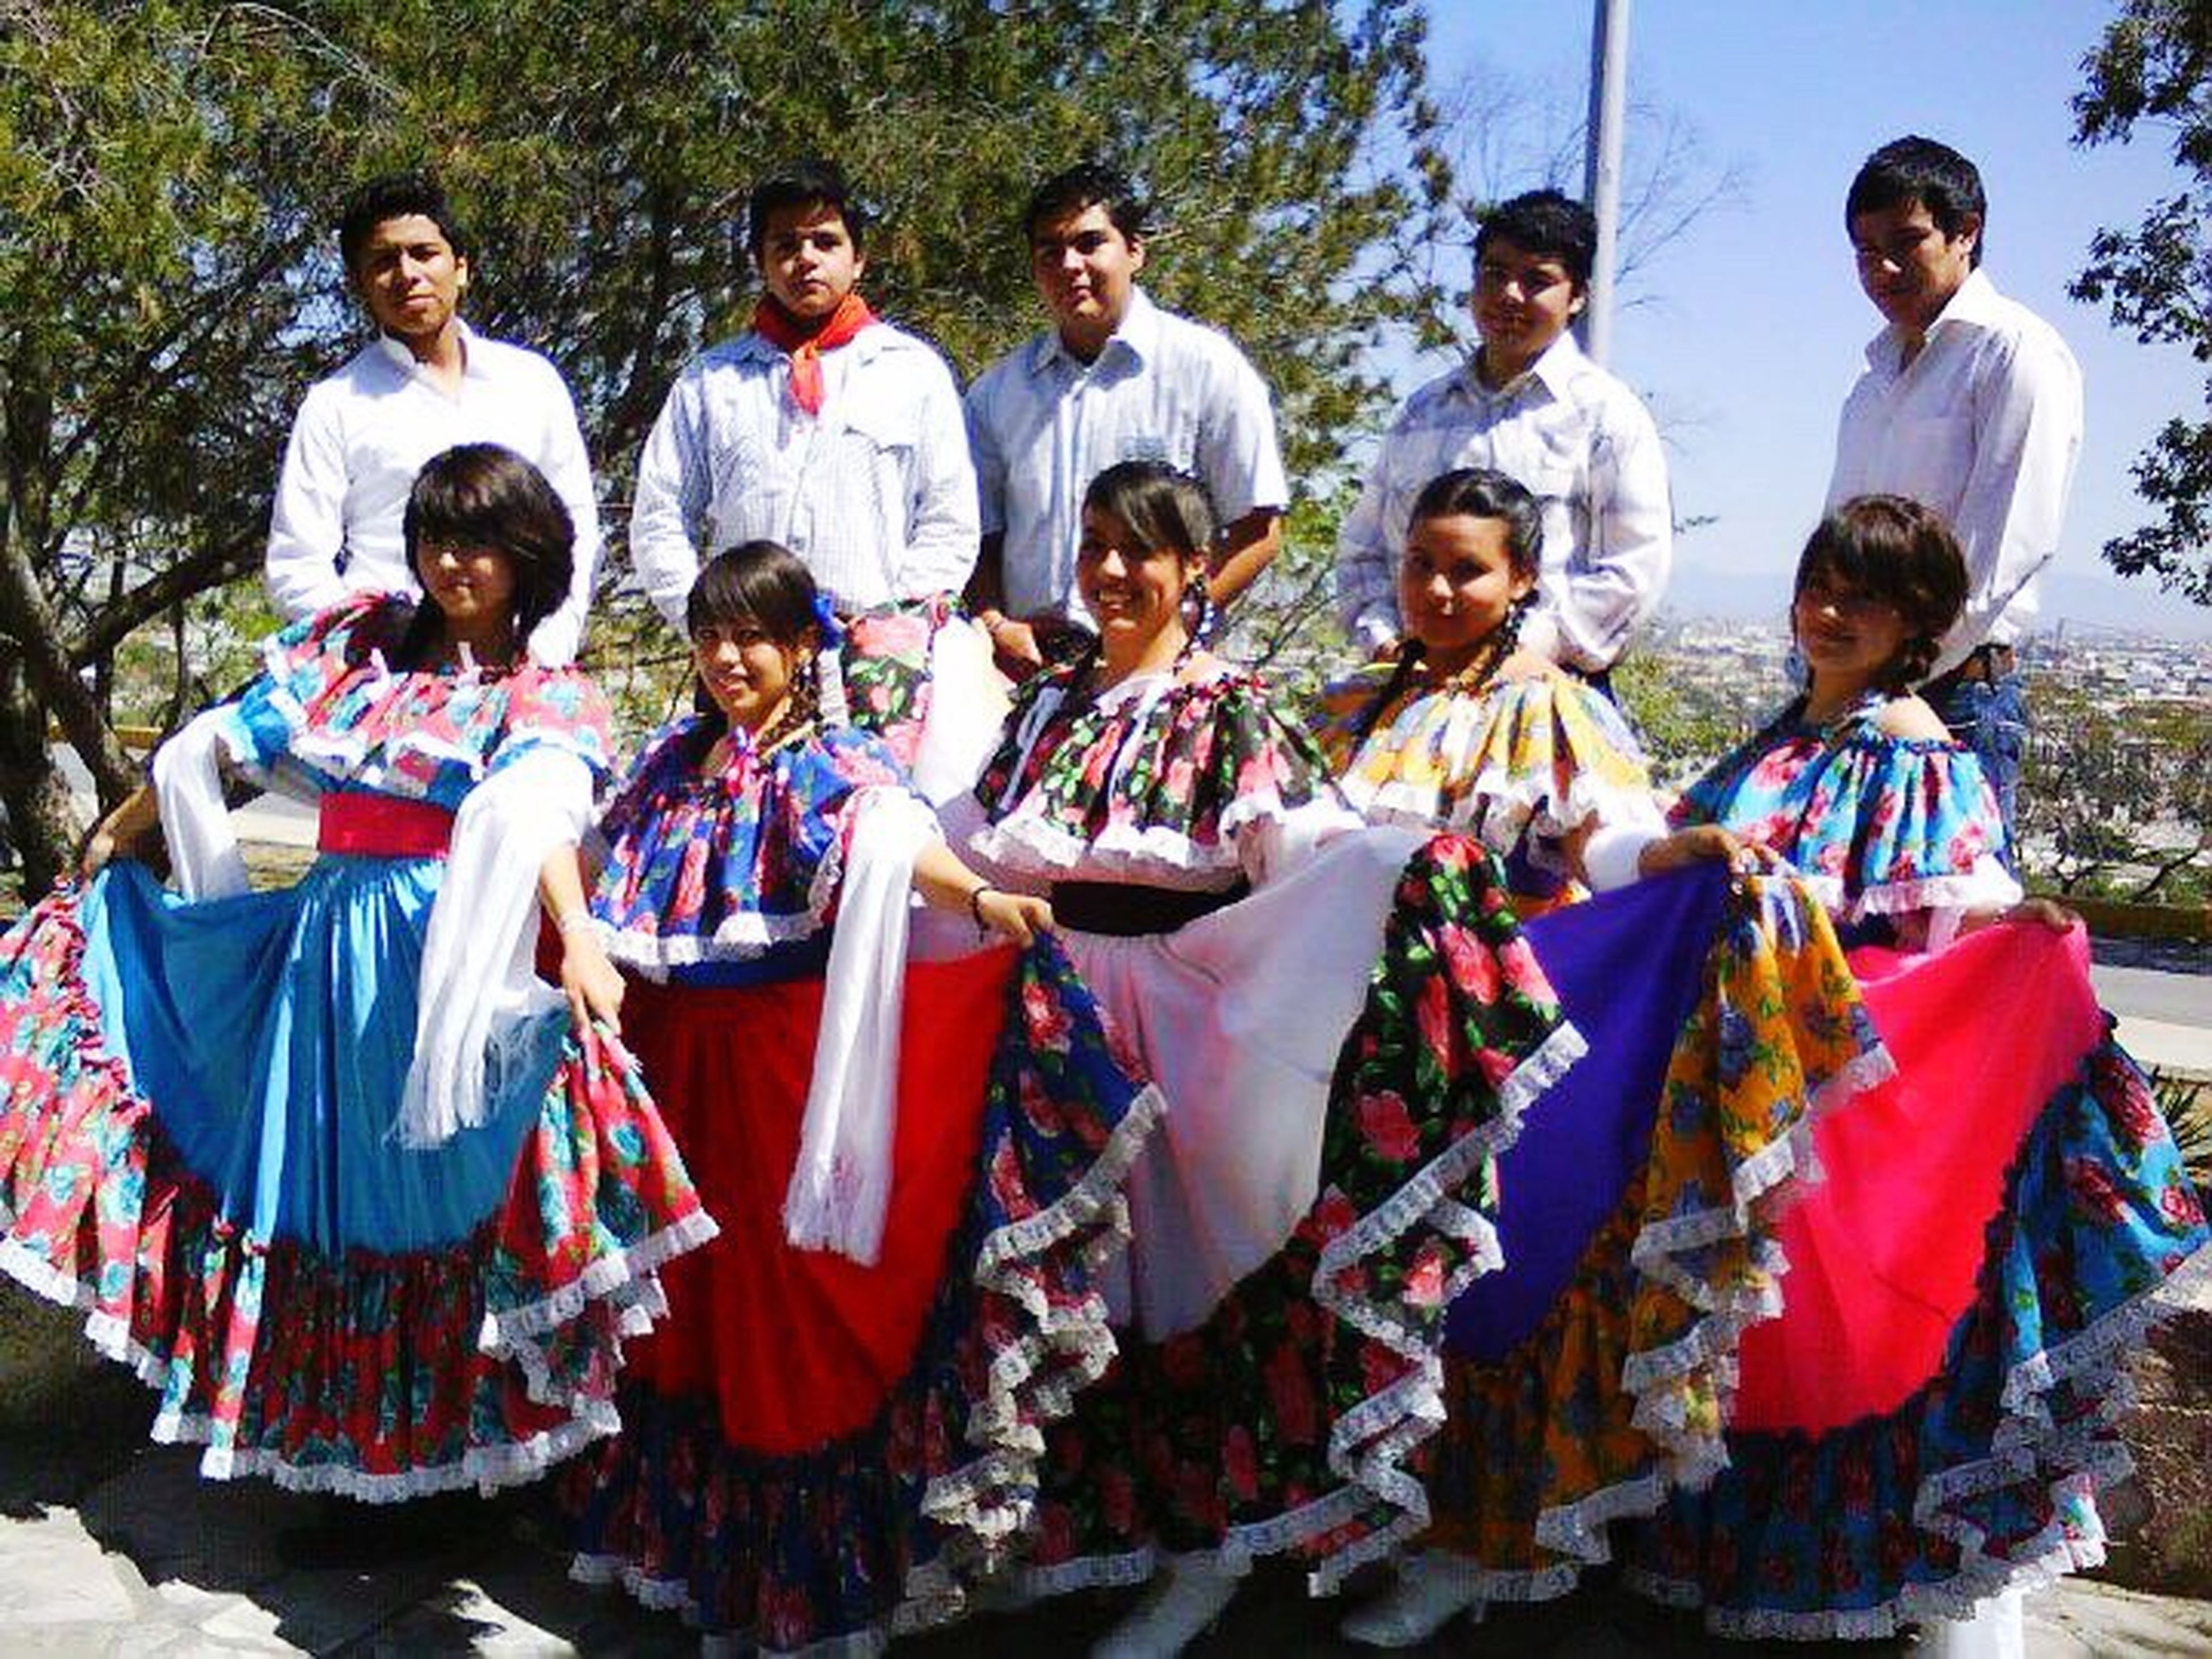 lifestyles, child, outdoors, arts culture and entertainment, traditional clothing, stage costume, full length, people, real people, men, large group of people, day, performance, adult, period costume, teamwork